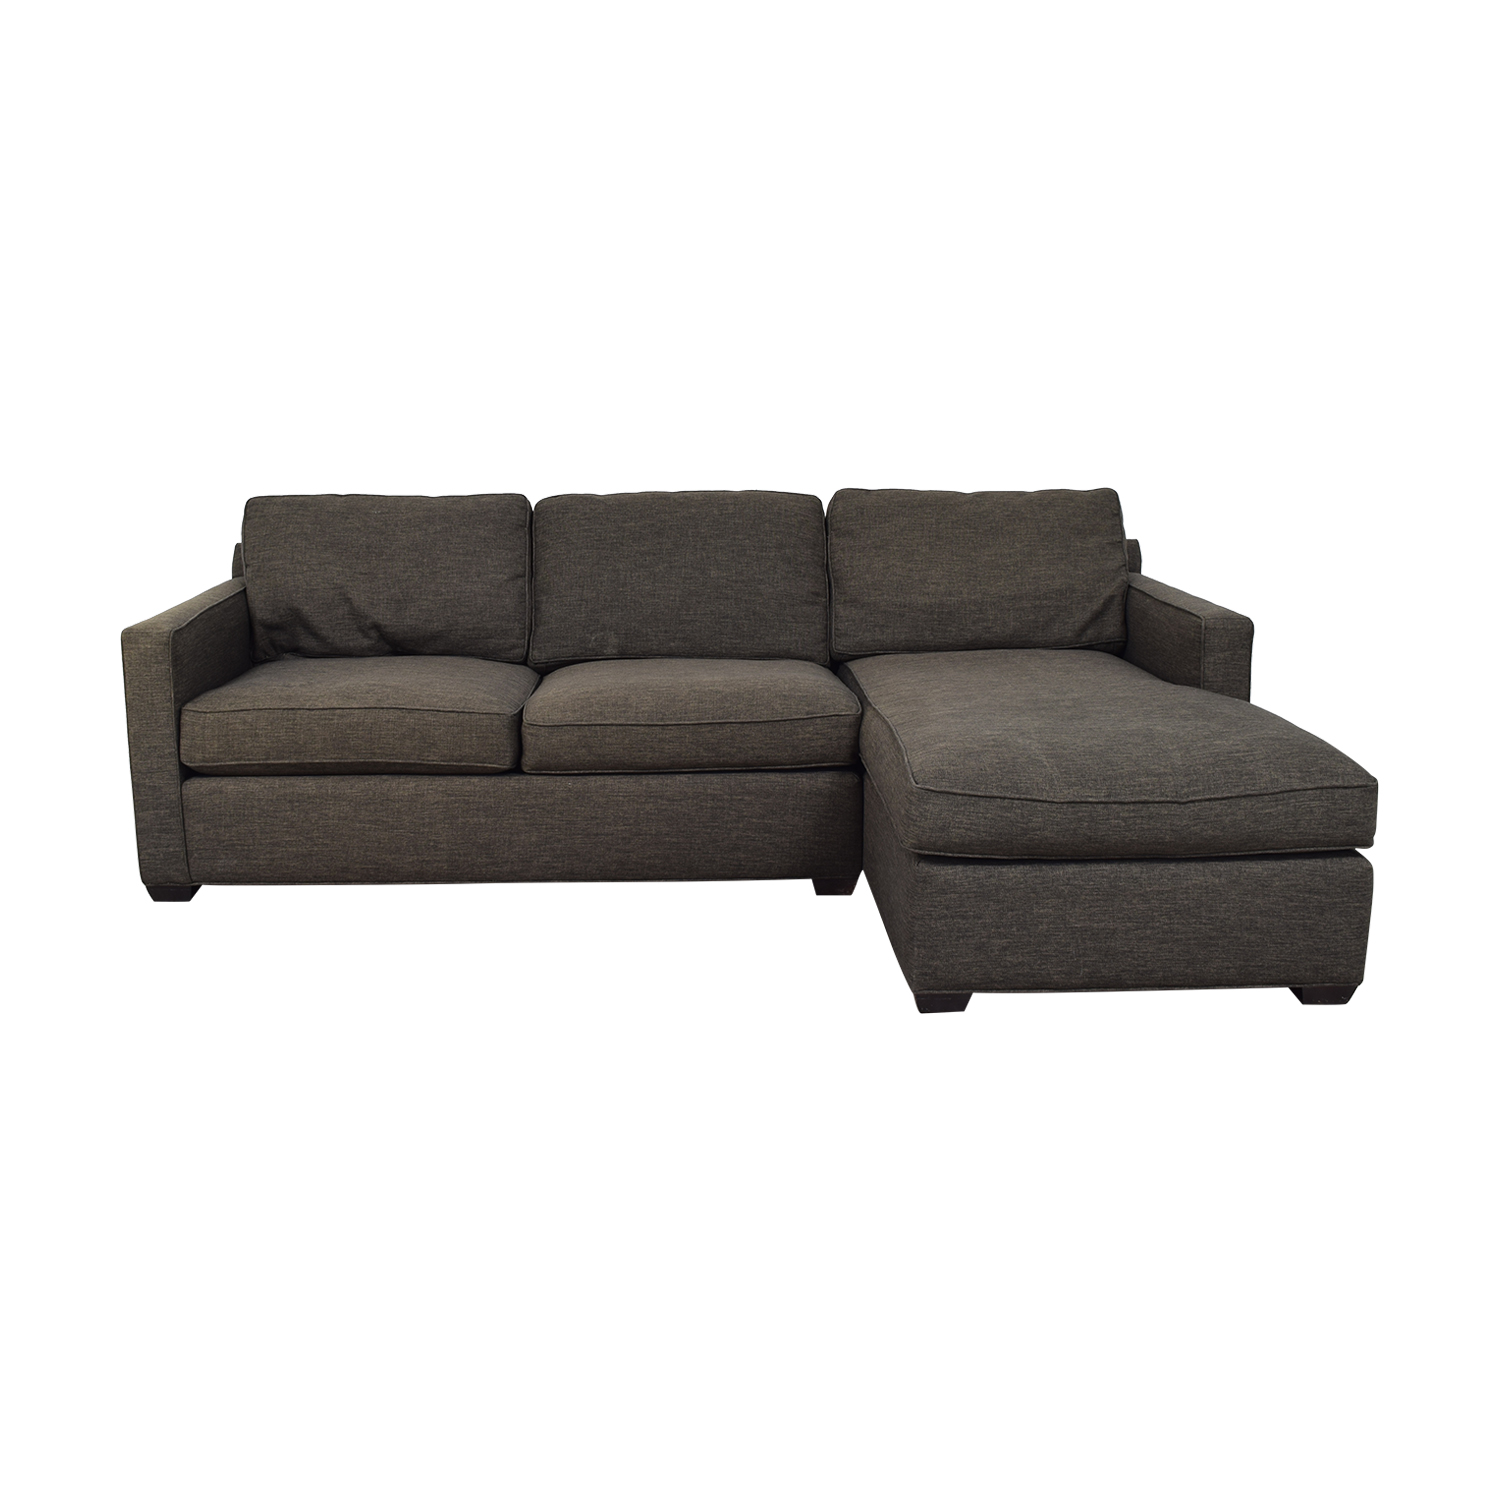 Crate & Barrel Crate & Barrel Grey Chaise Sectional Sofas